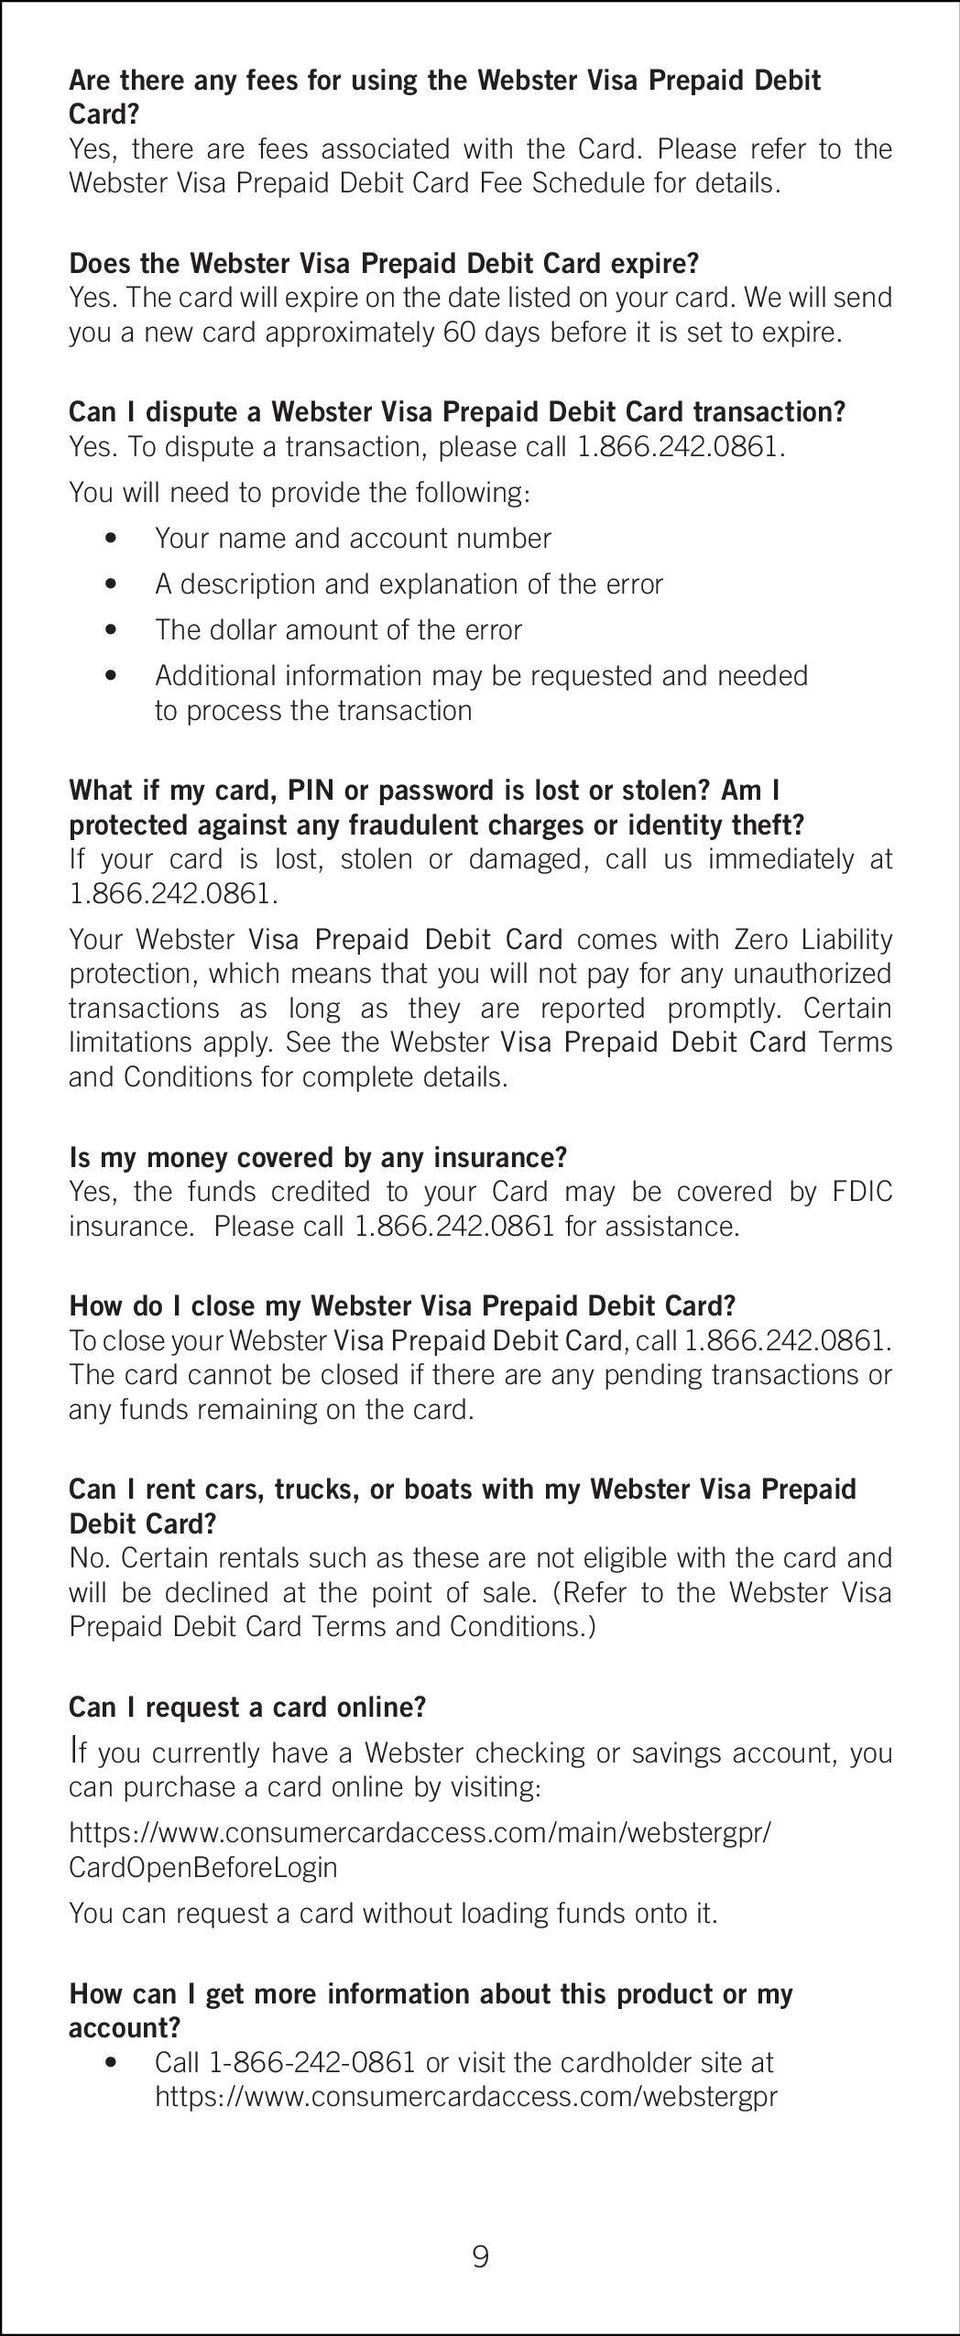 Can I dispute a Webster Visa Prepaid Debit Card transaction? Yes. To dispute a transaction, please call 1.866.242.0861.